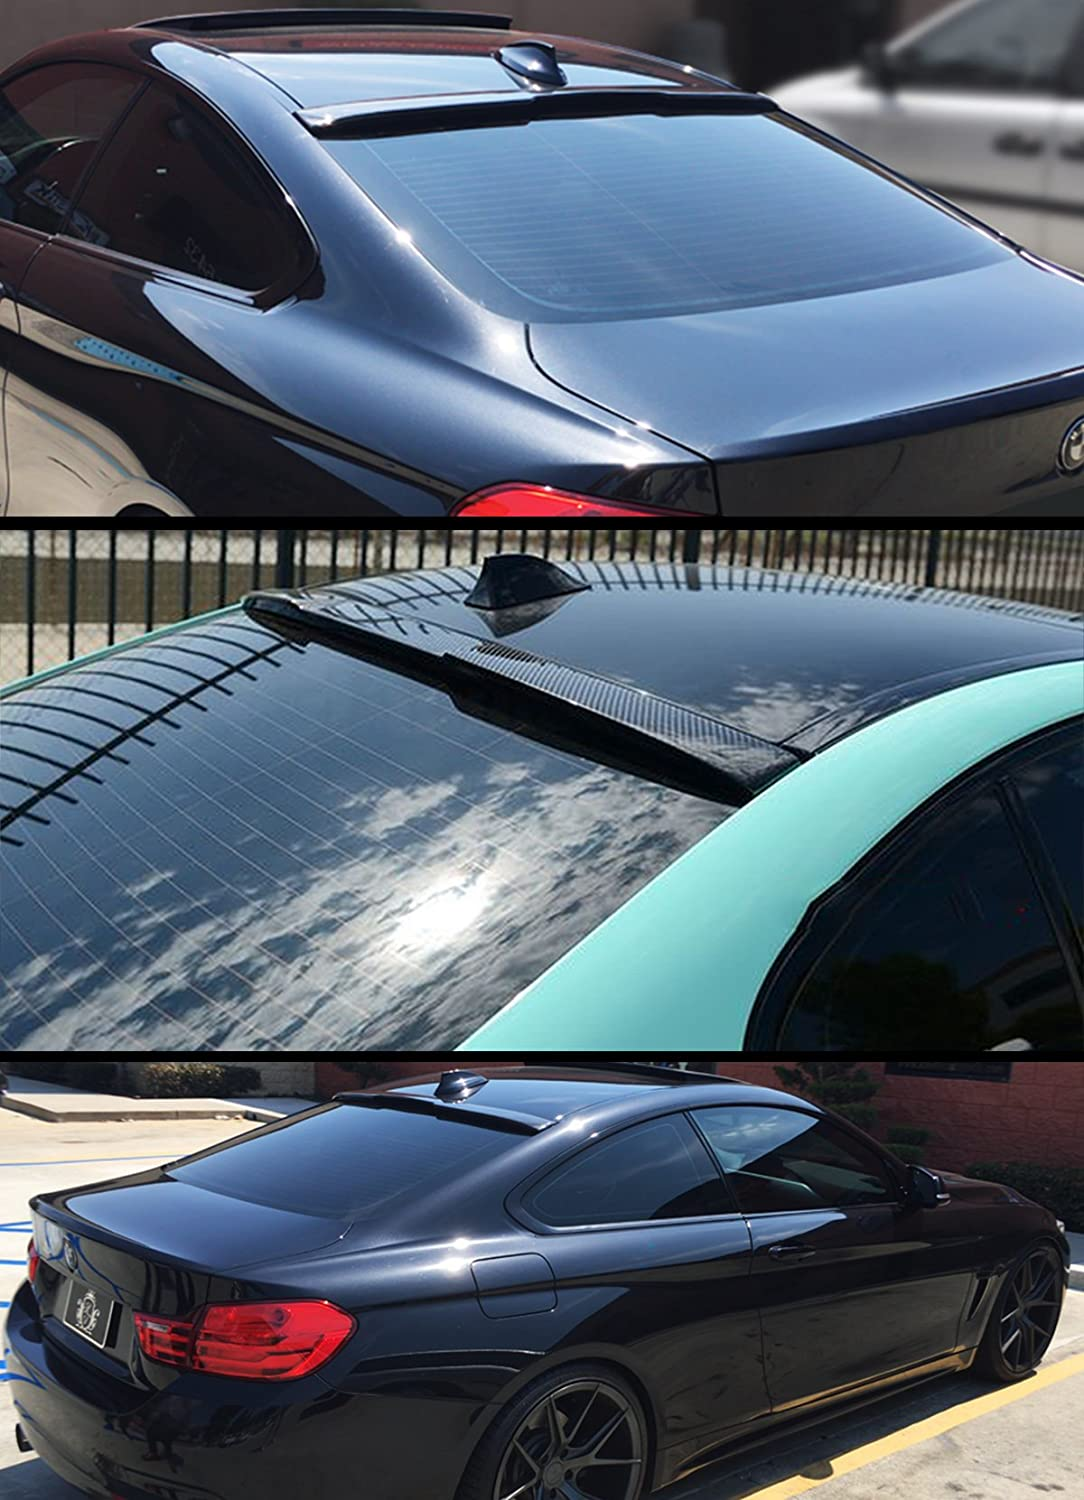 Cuztom Tuning Fits for 2014-2019 BMW F32 4 Series /& 2015-2019 F82 M4 2 Door Coupe Carbon Fiber Rear Window Roof Spoiler